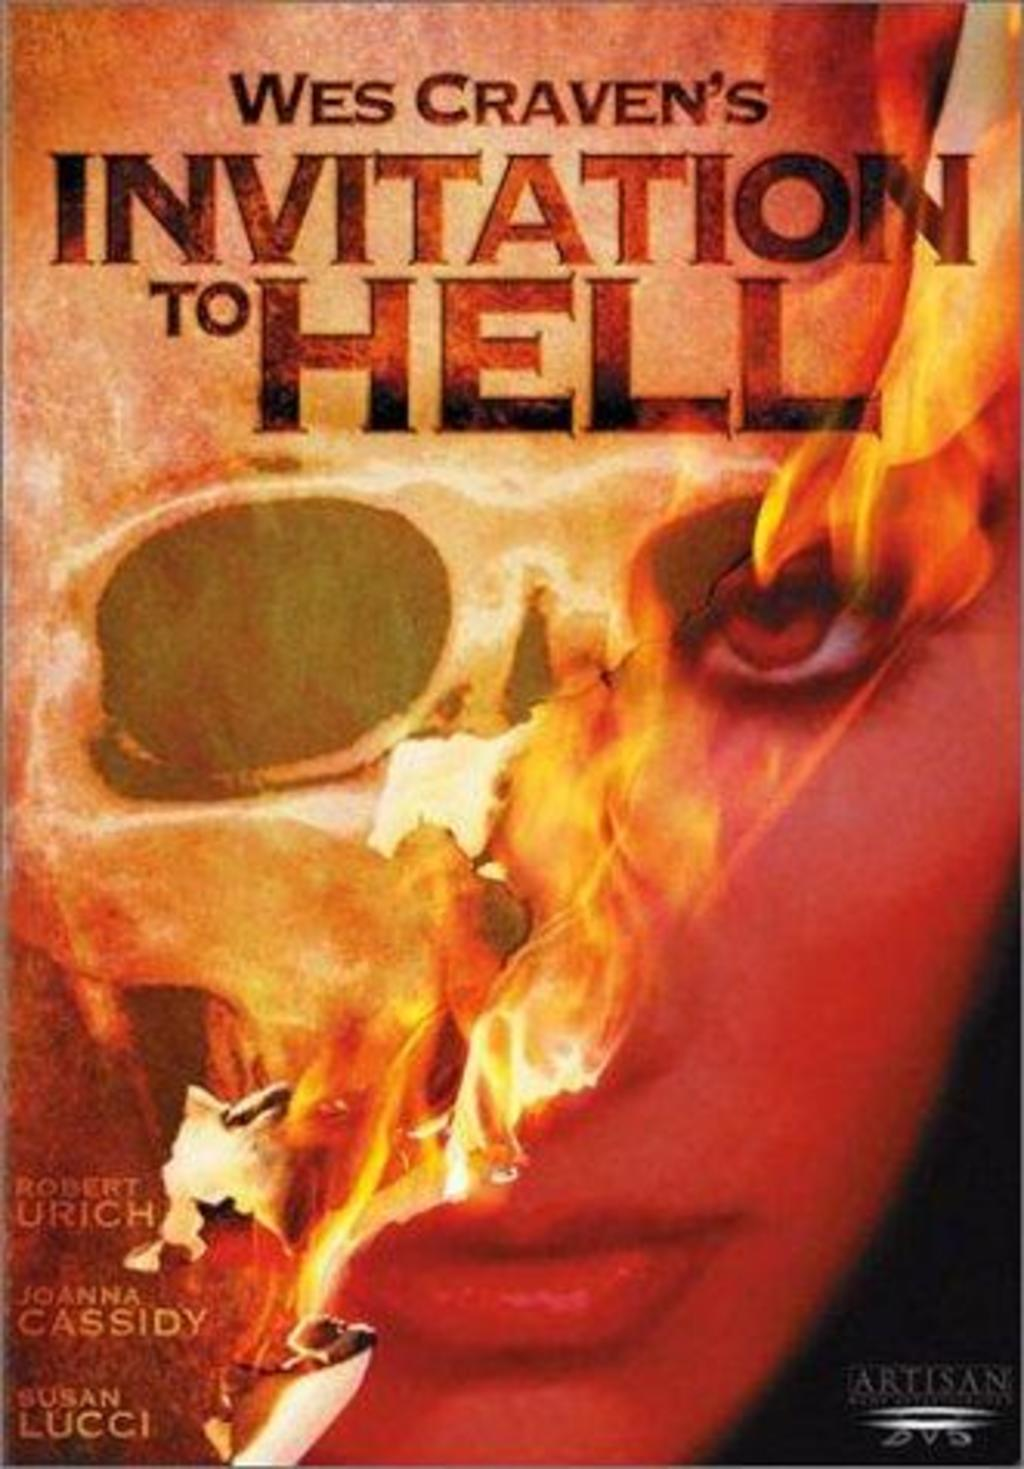 Watch invitation to hell on netflix today netflixmovies invitation to hell movie still 2 stopboris Images